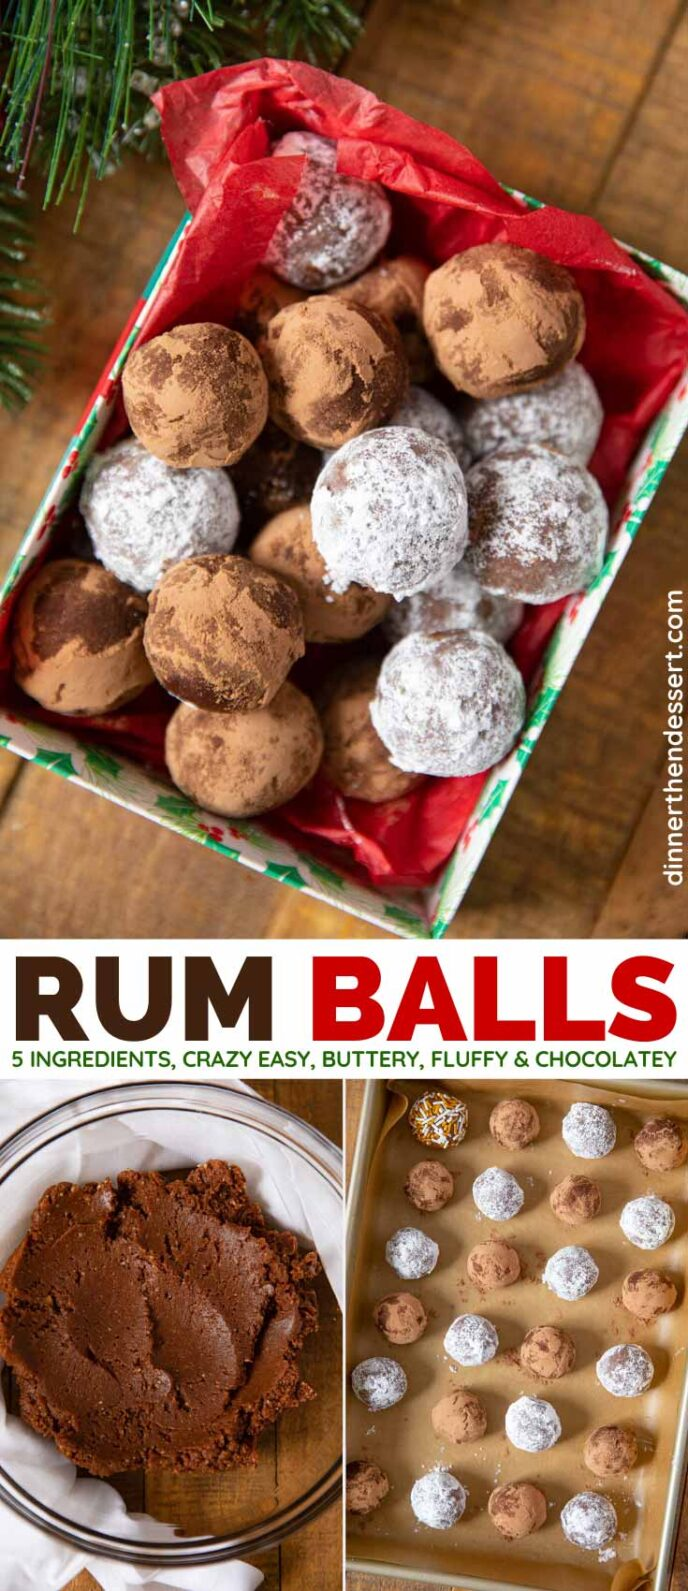 Chocolate Rum Balls collage